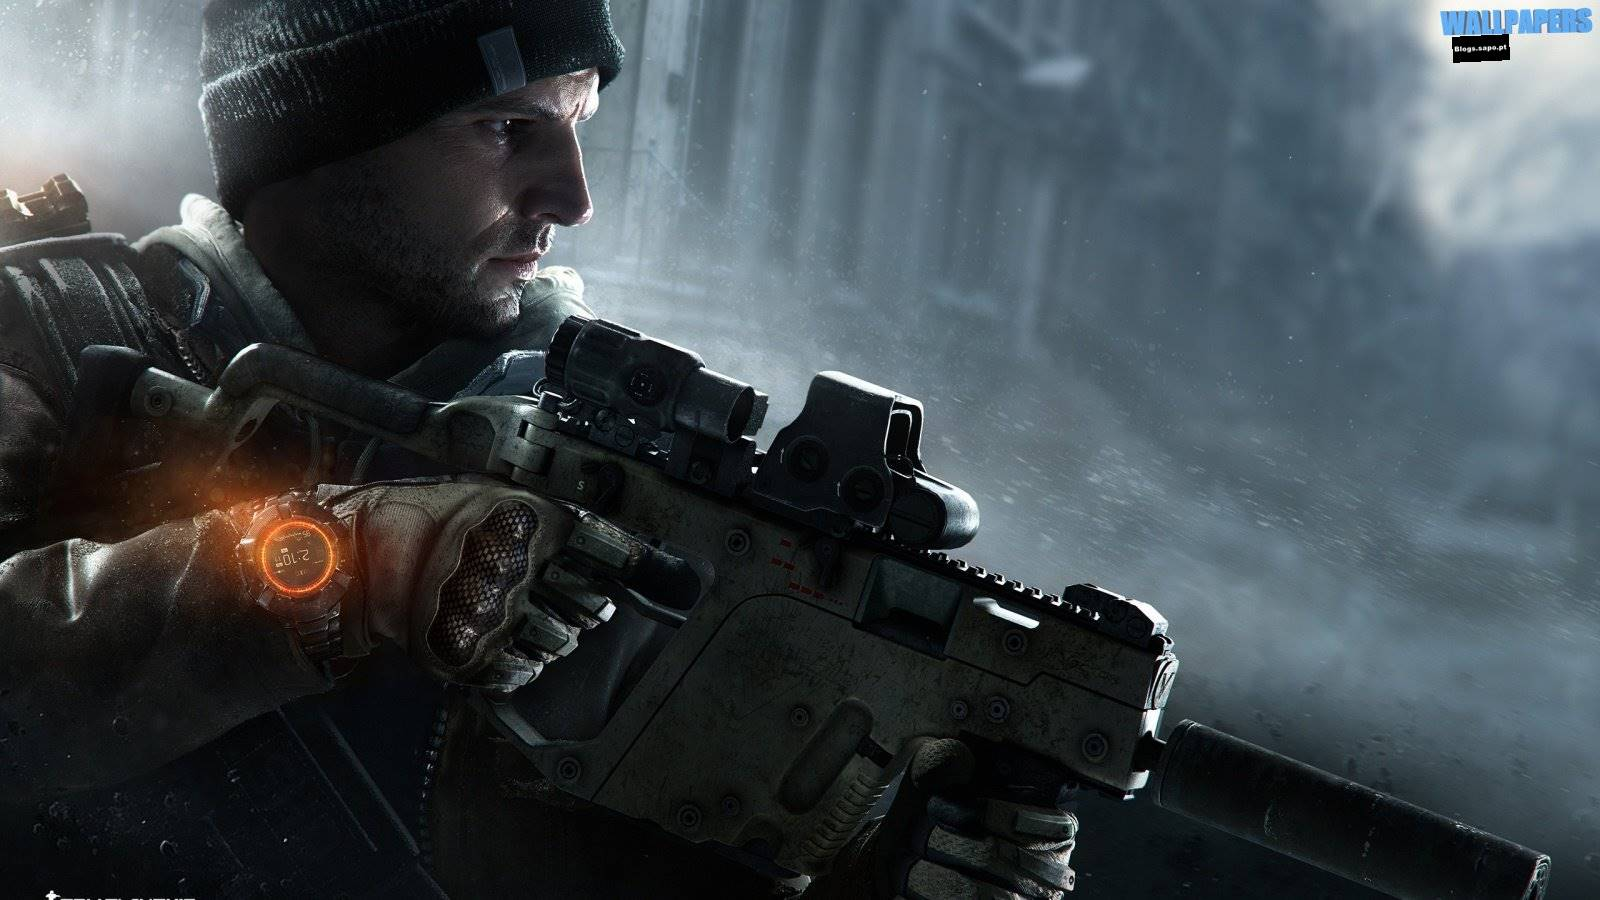 Tom clancys the division agent 1600215900 Wallpaper 29 HD 1600x900